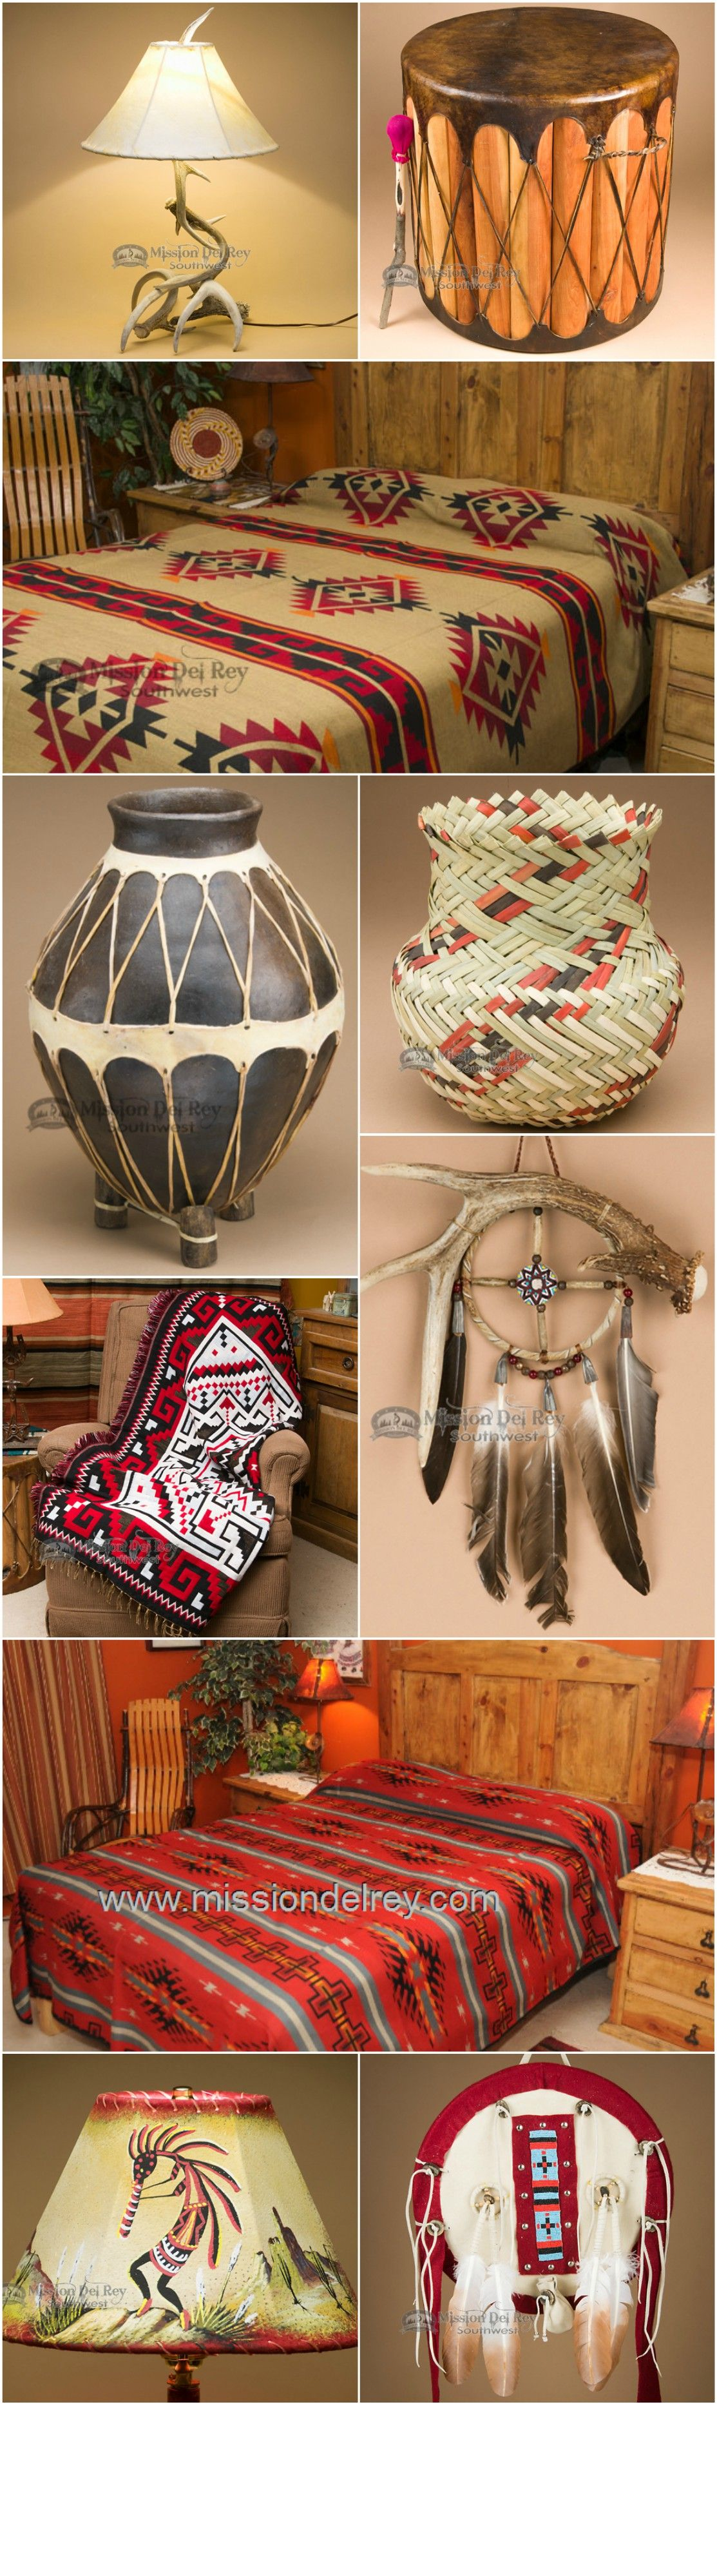 Find the perfect home decor accents for your rustic